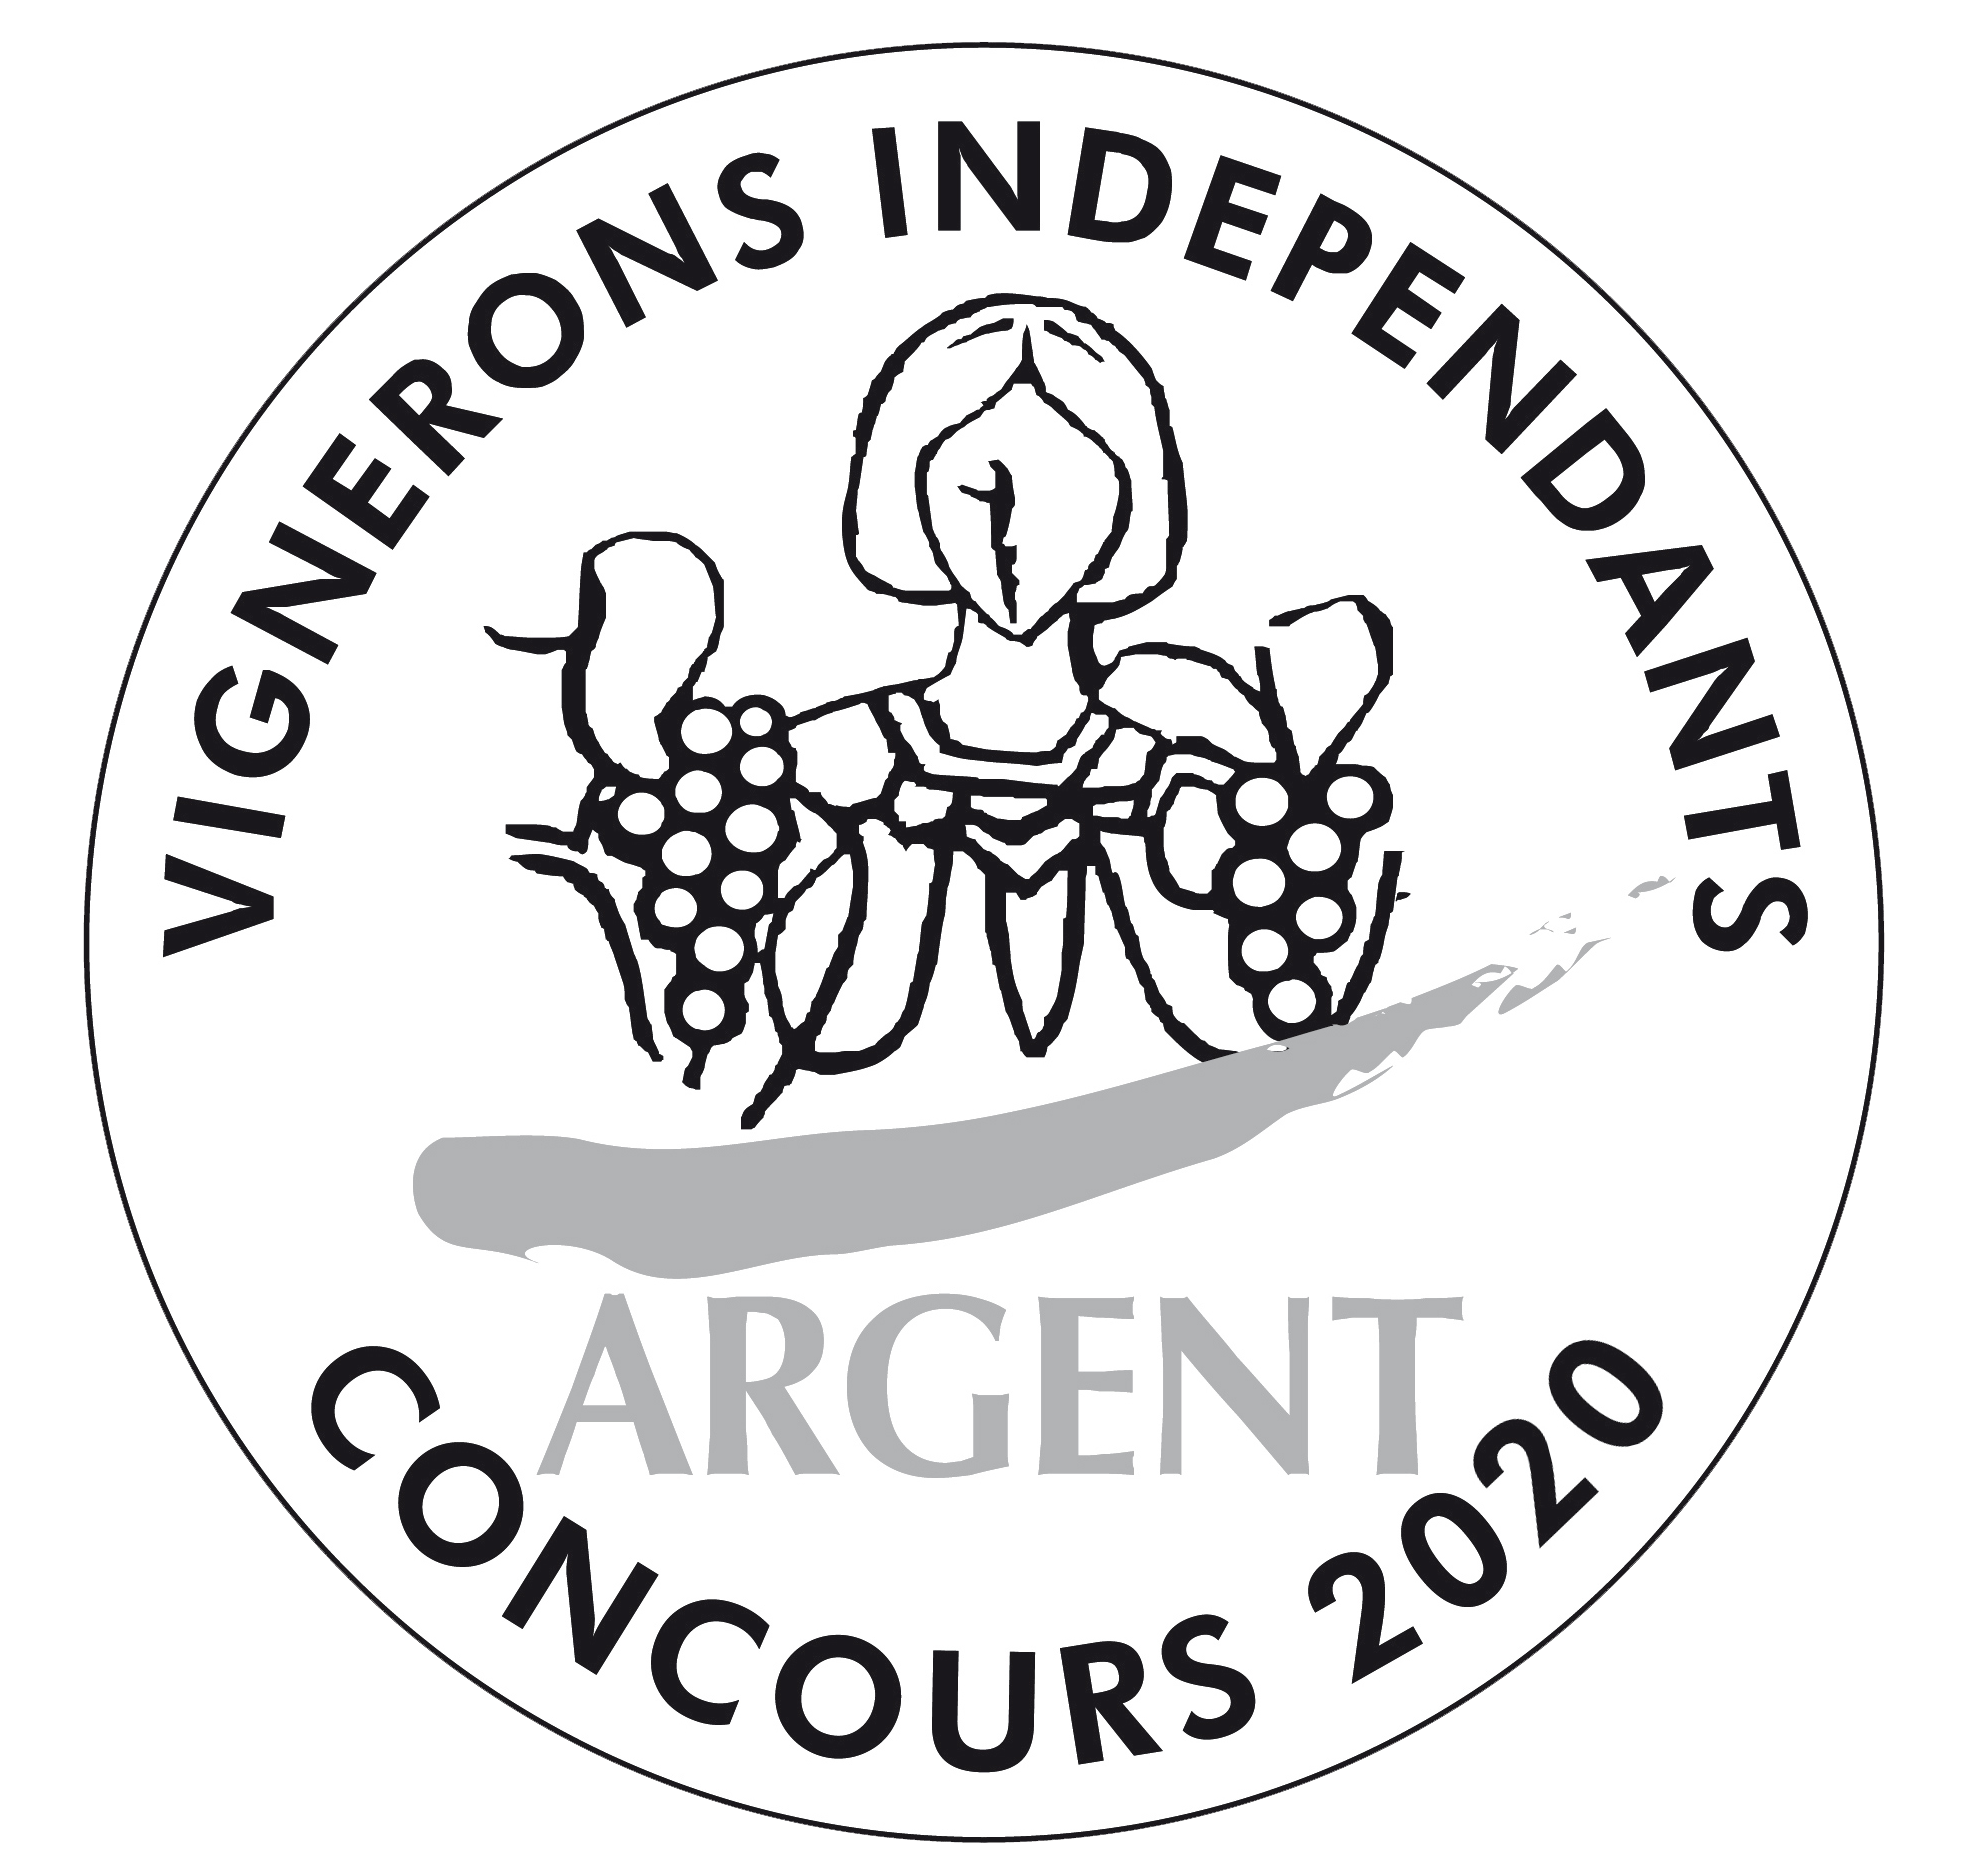 VIGNERONS INDEPENDANTS ARGENT CR ROSE 2019